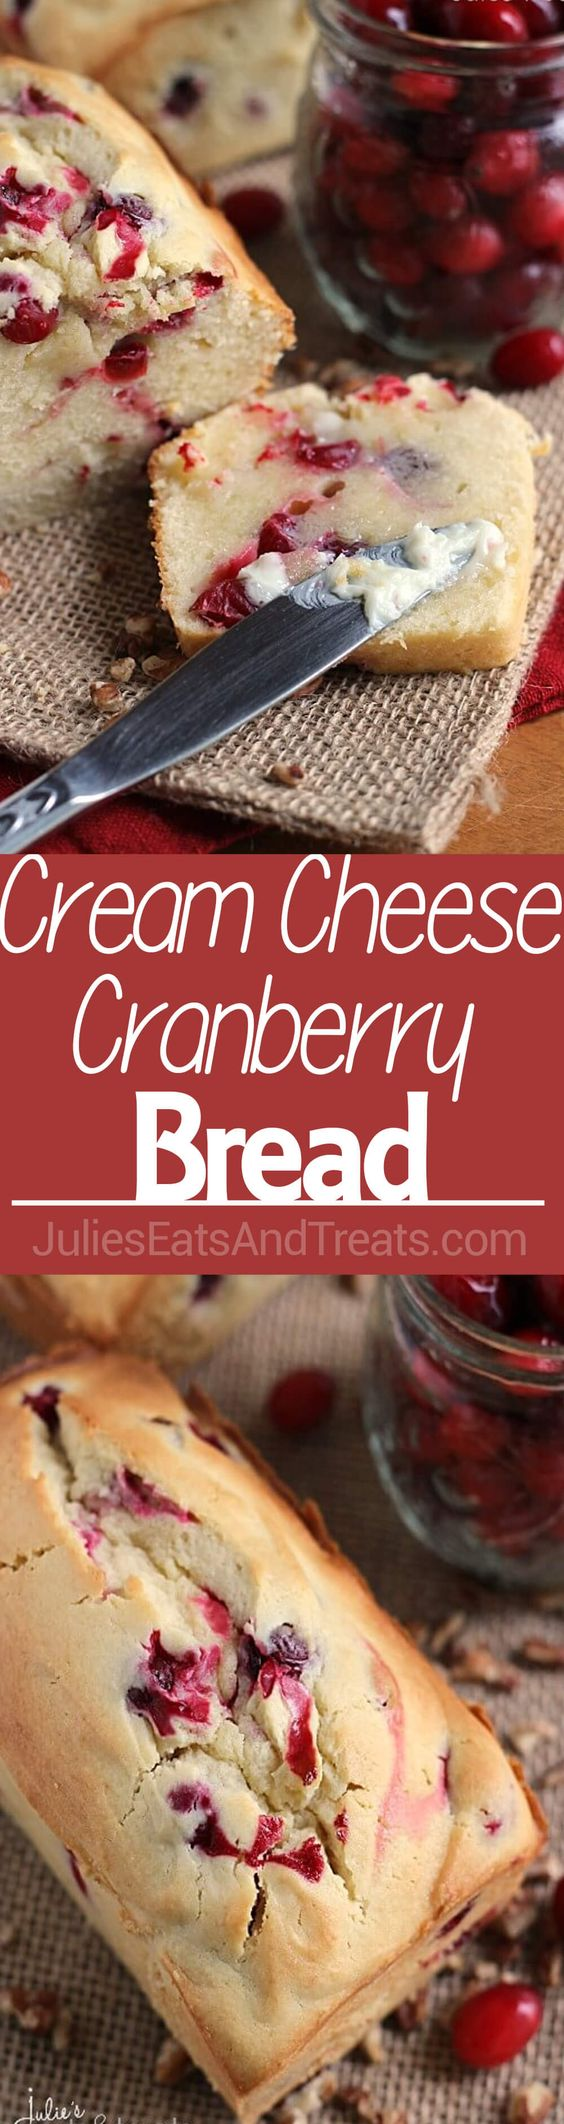 Cream Cheese Cranberry Bread Recipe via Julie's Eats and Treats ~ Amazingly Soft and Tender Quick Bread Stuffed with Tart Cranberries! #dessertbreads #neighborgifts #homemadegifts #foodgifts #breadrecipes #flavoredbreads #sweetbreads #holidaybread #bread #homemadebread #simplebreadrecipes #simplebread #simplerecipes